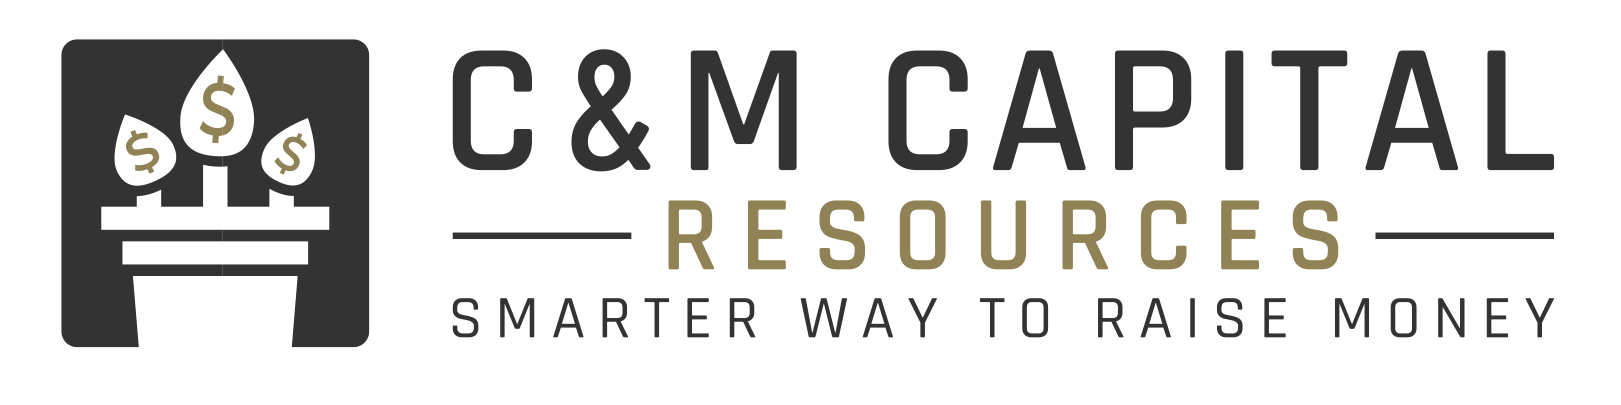 C&M Capital Resources